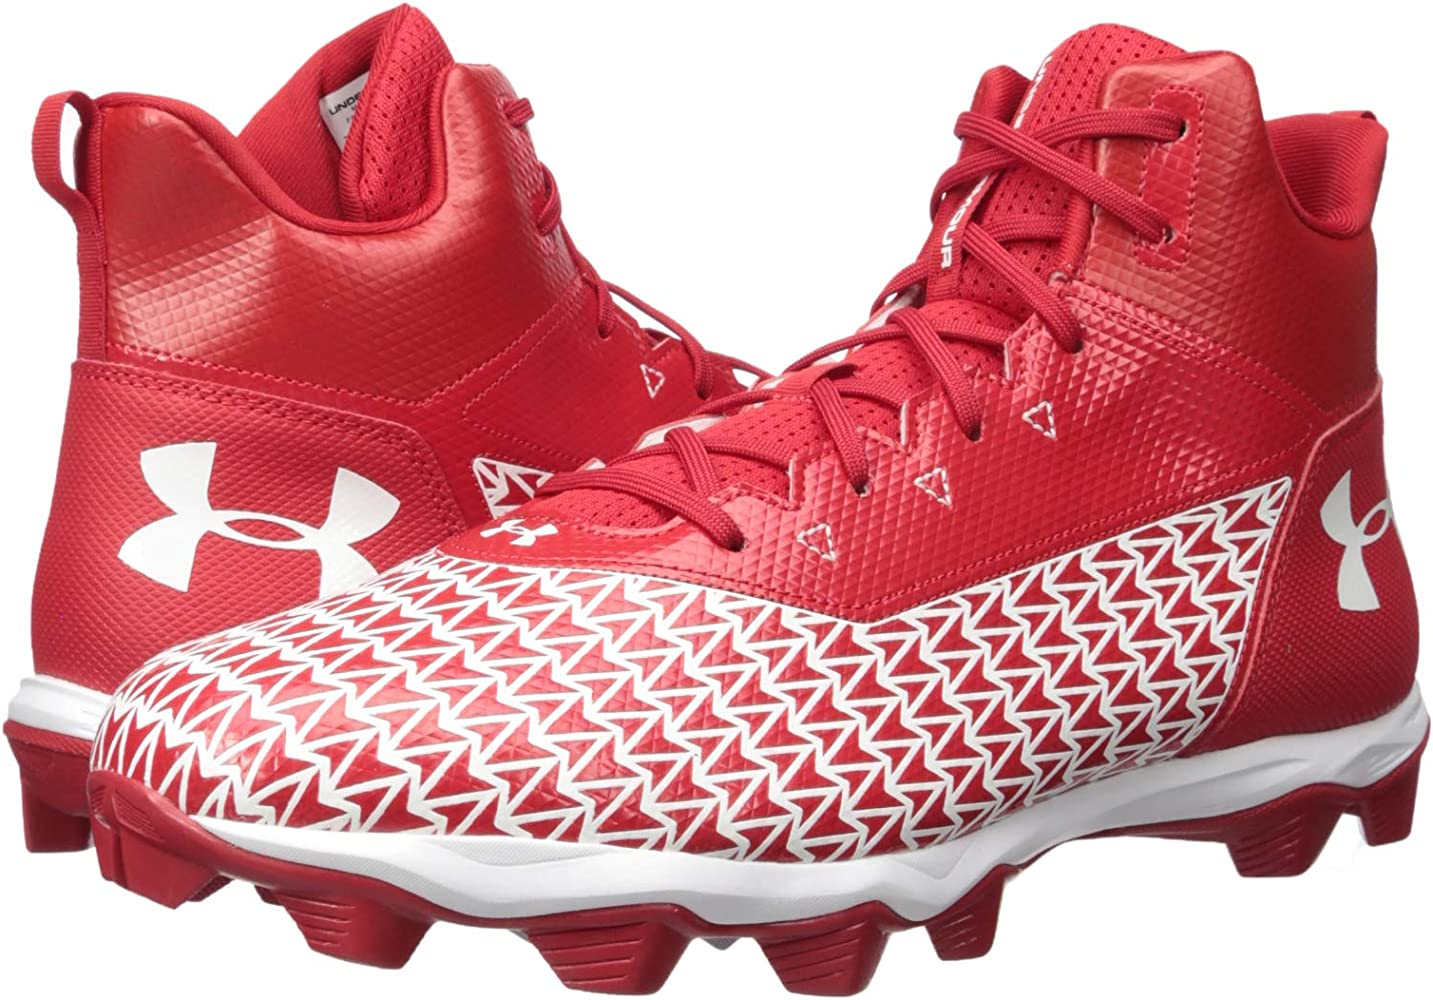 New Under Armour UA Renegade RM Size 14 Men's Football Cleats Style 3000174-002